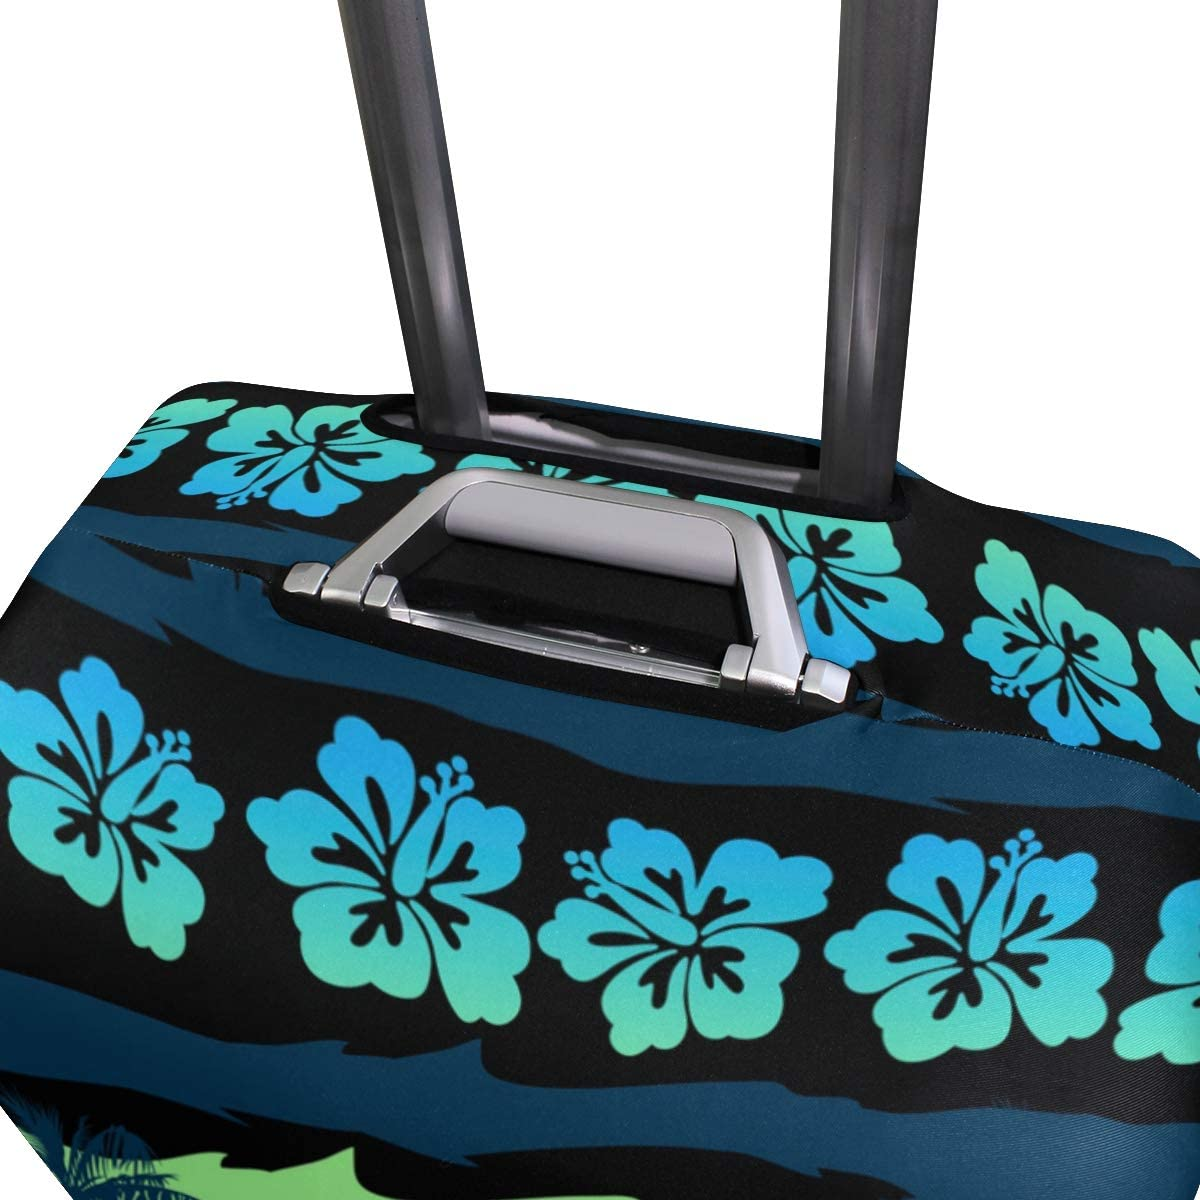 FOLPPLY Tropical Green Sunrise Landscape Luggage Cover Baggage Suitcase Travel Protector Fit for 18-32 Inch